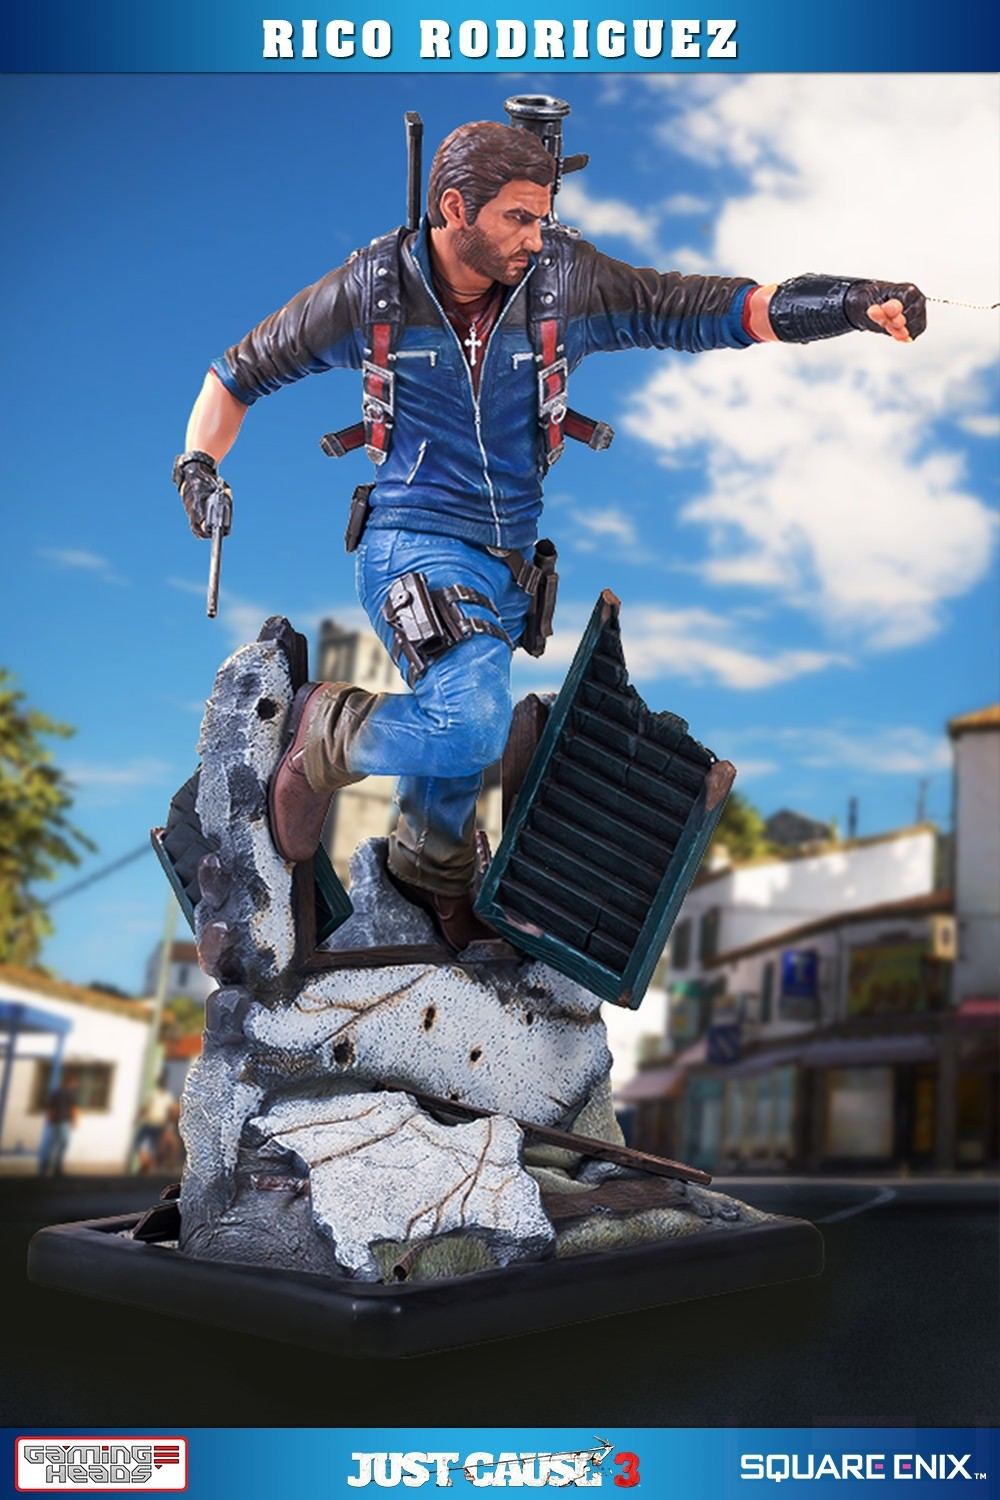 Just The Essentials Celebrating The Pre K Graduate With A: Just Cause 3 Statue 1/4 Rico Rodriguez 79 Cm Von Gaming